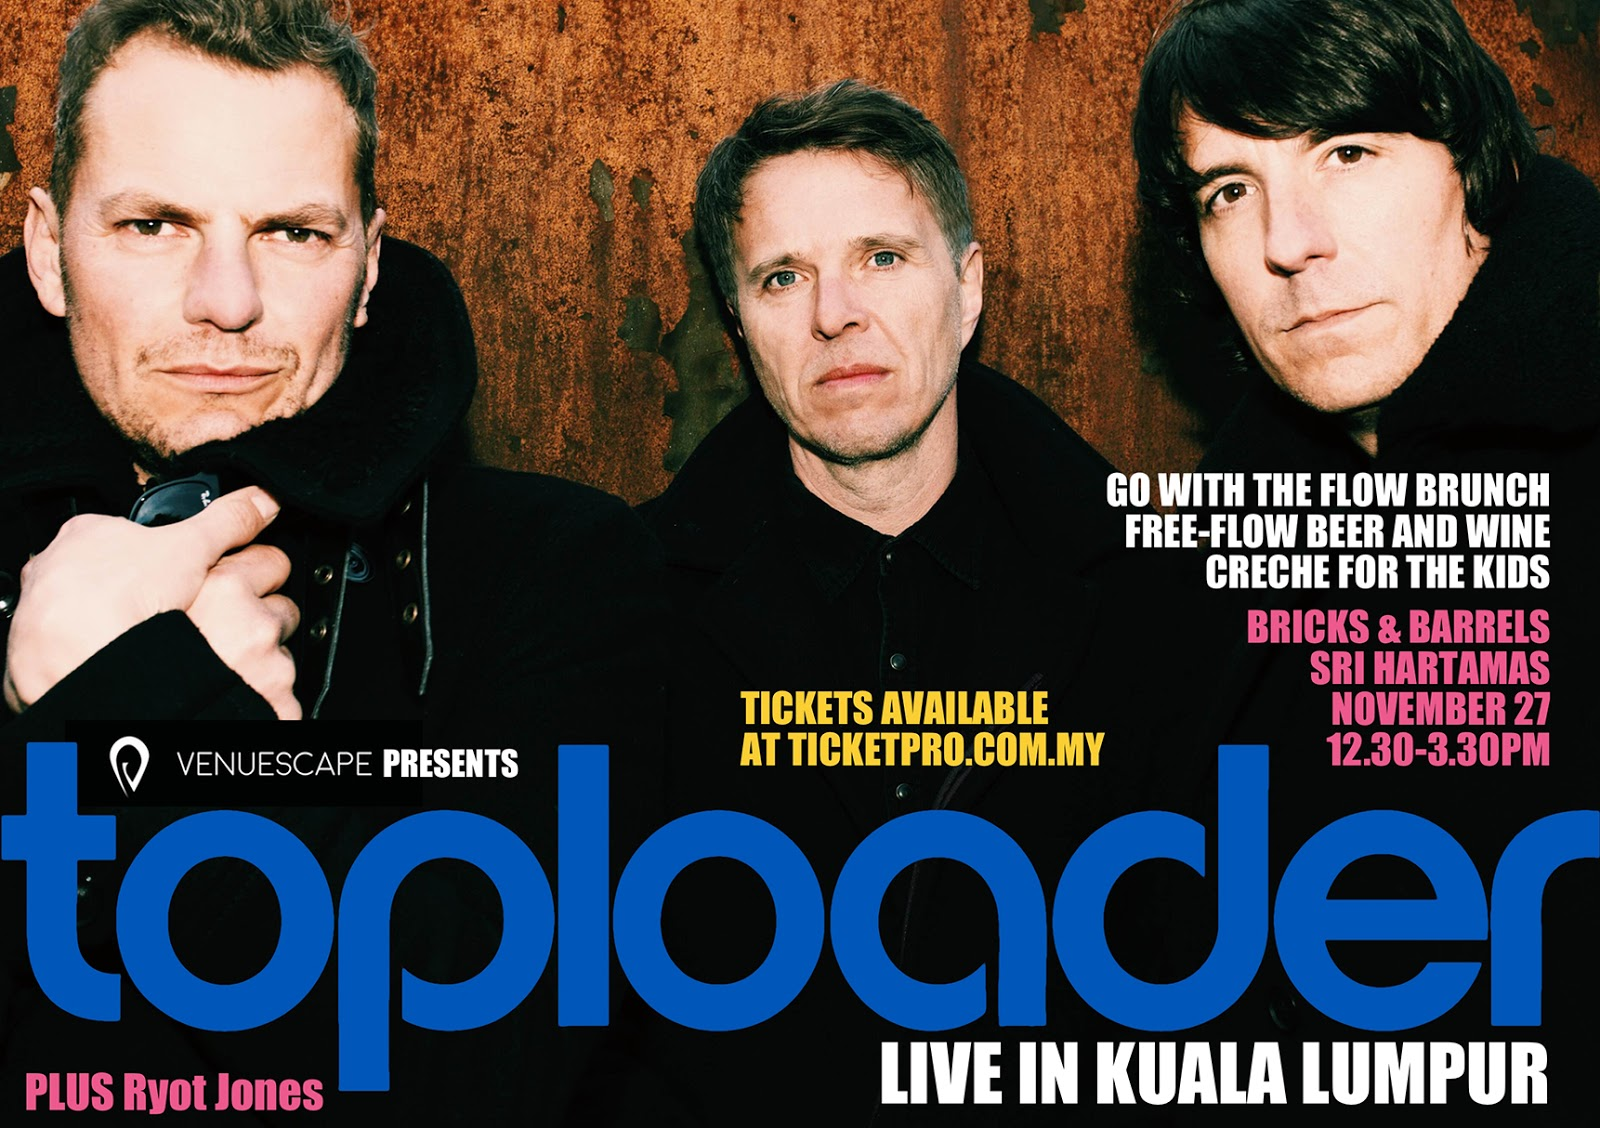 Have loads of fun with British band Toploader - TheHive Asia